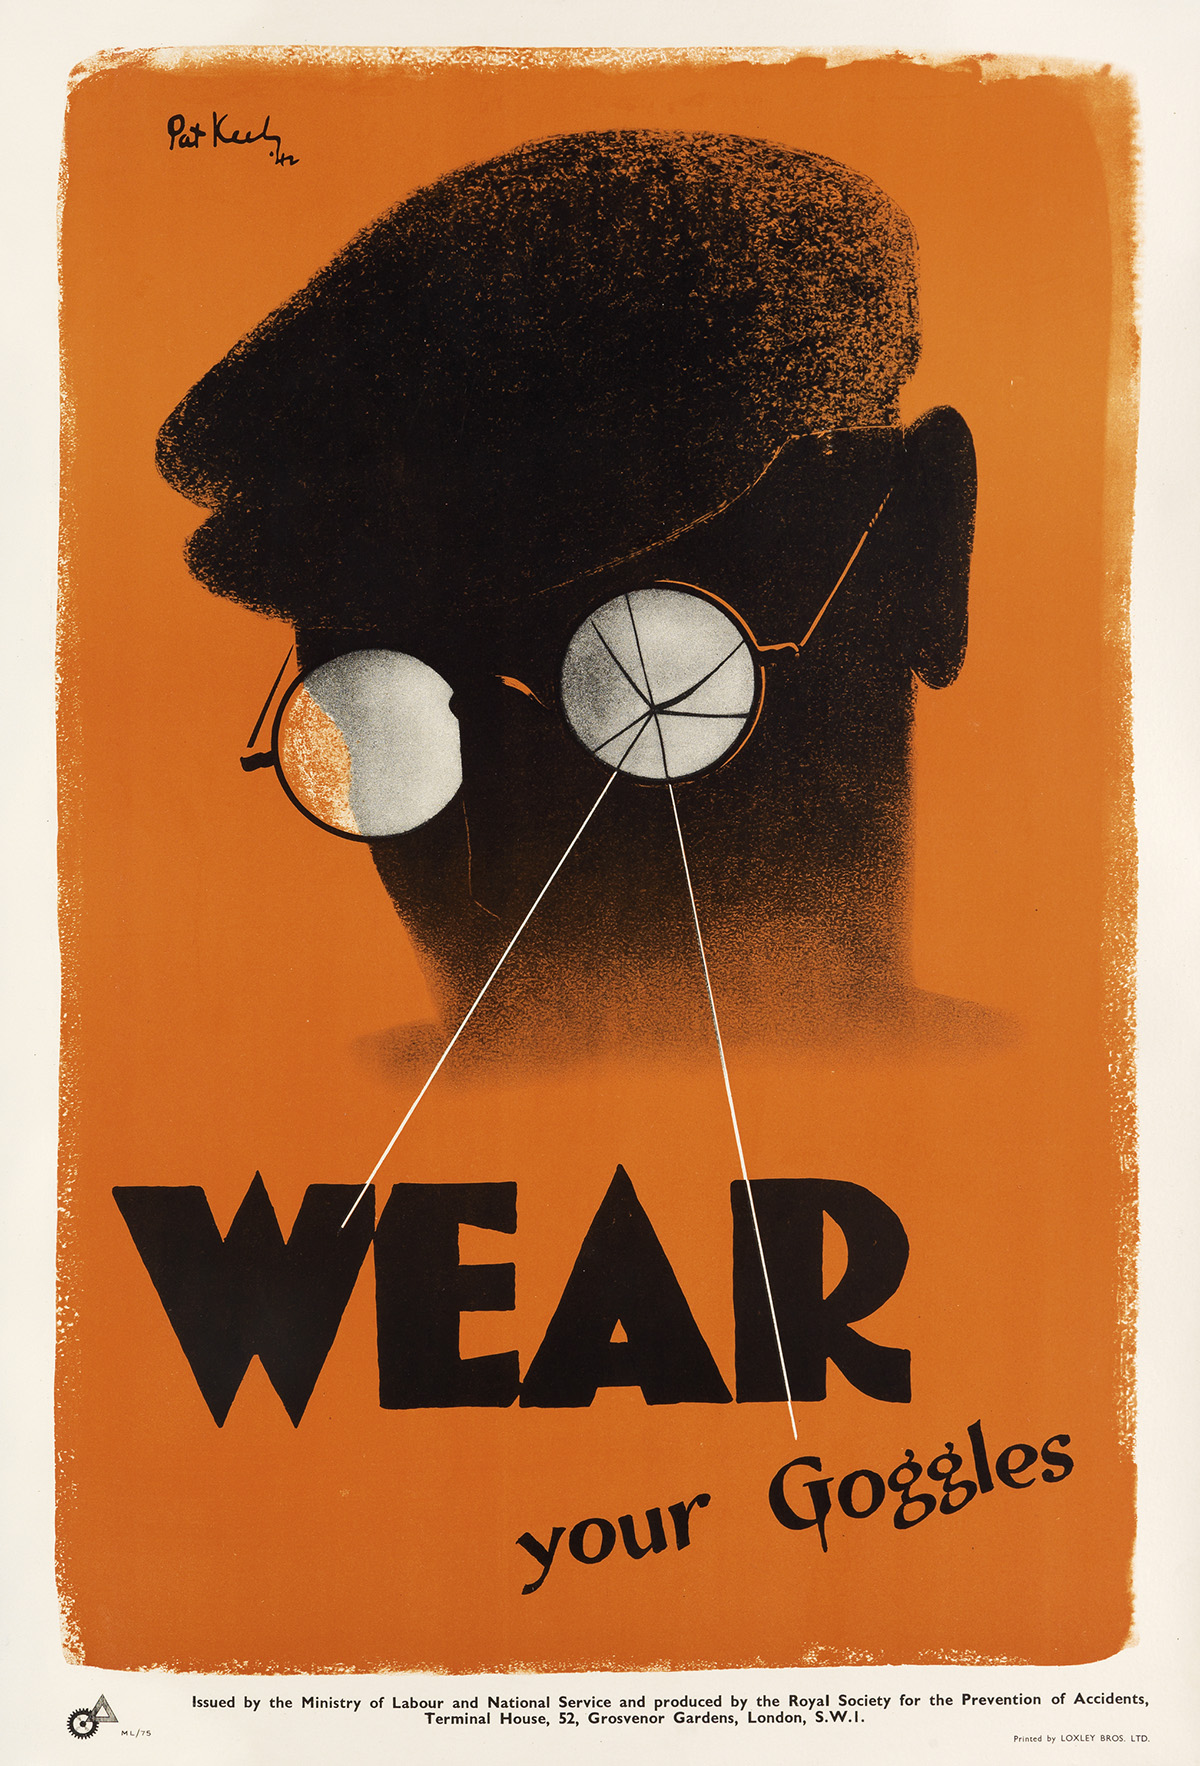 PATRICK-COKAYNE-KEELY-(1901-1970)-WEAR-YOUR-GOGGLES-1942-29x